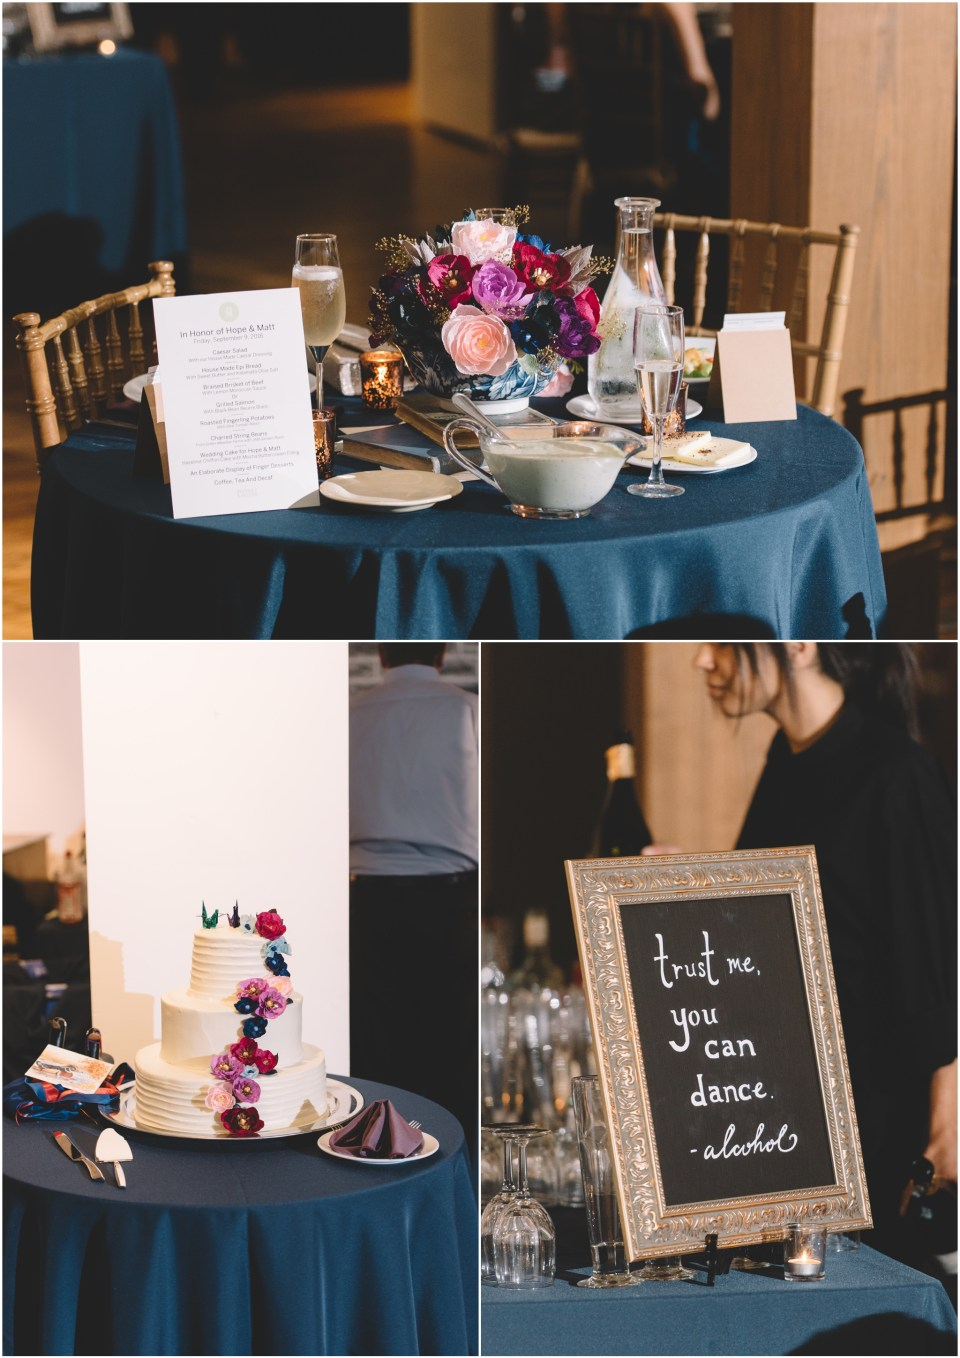 Book Theme Wedding Reception Details